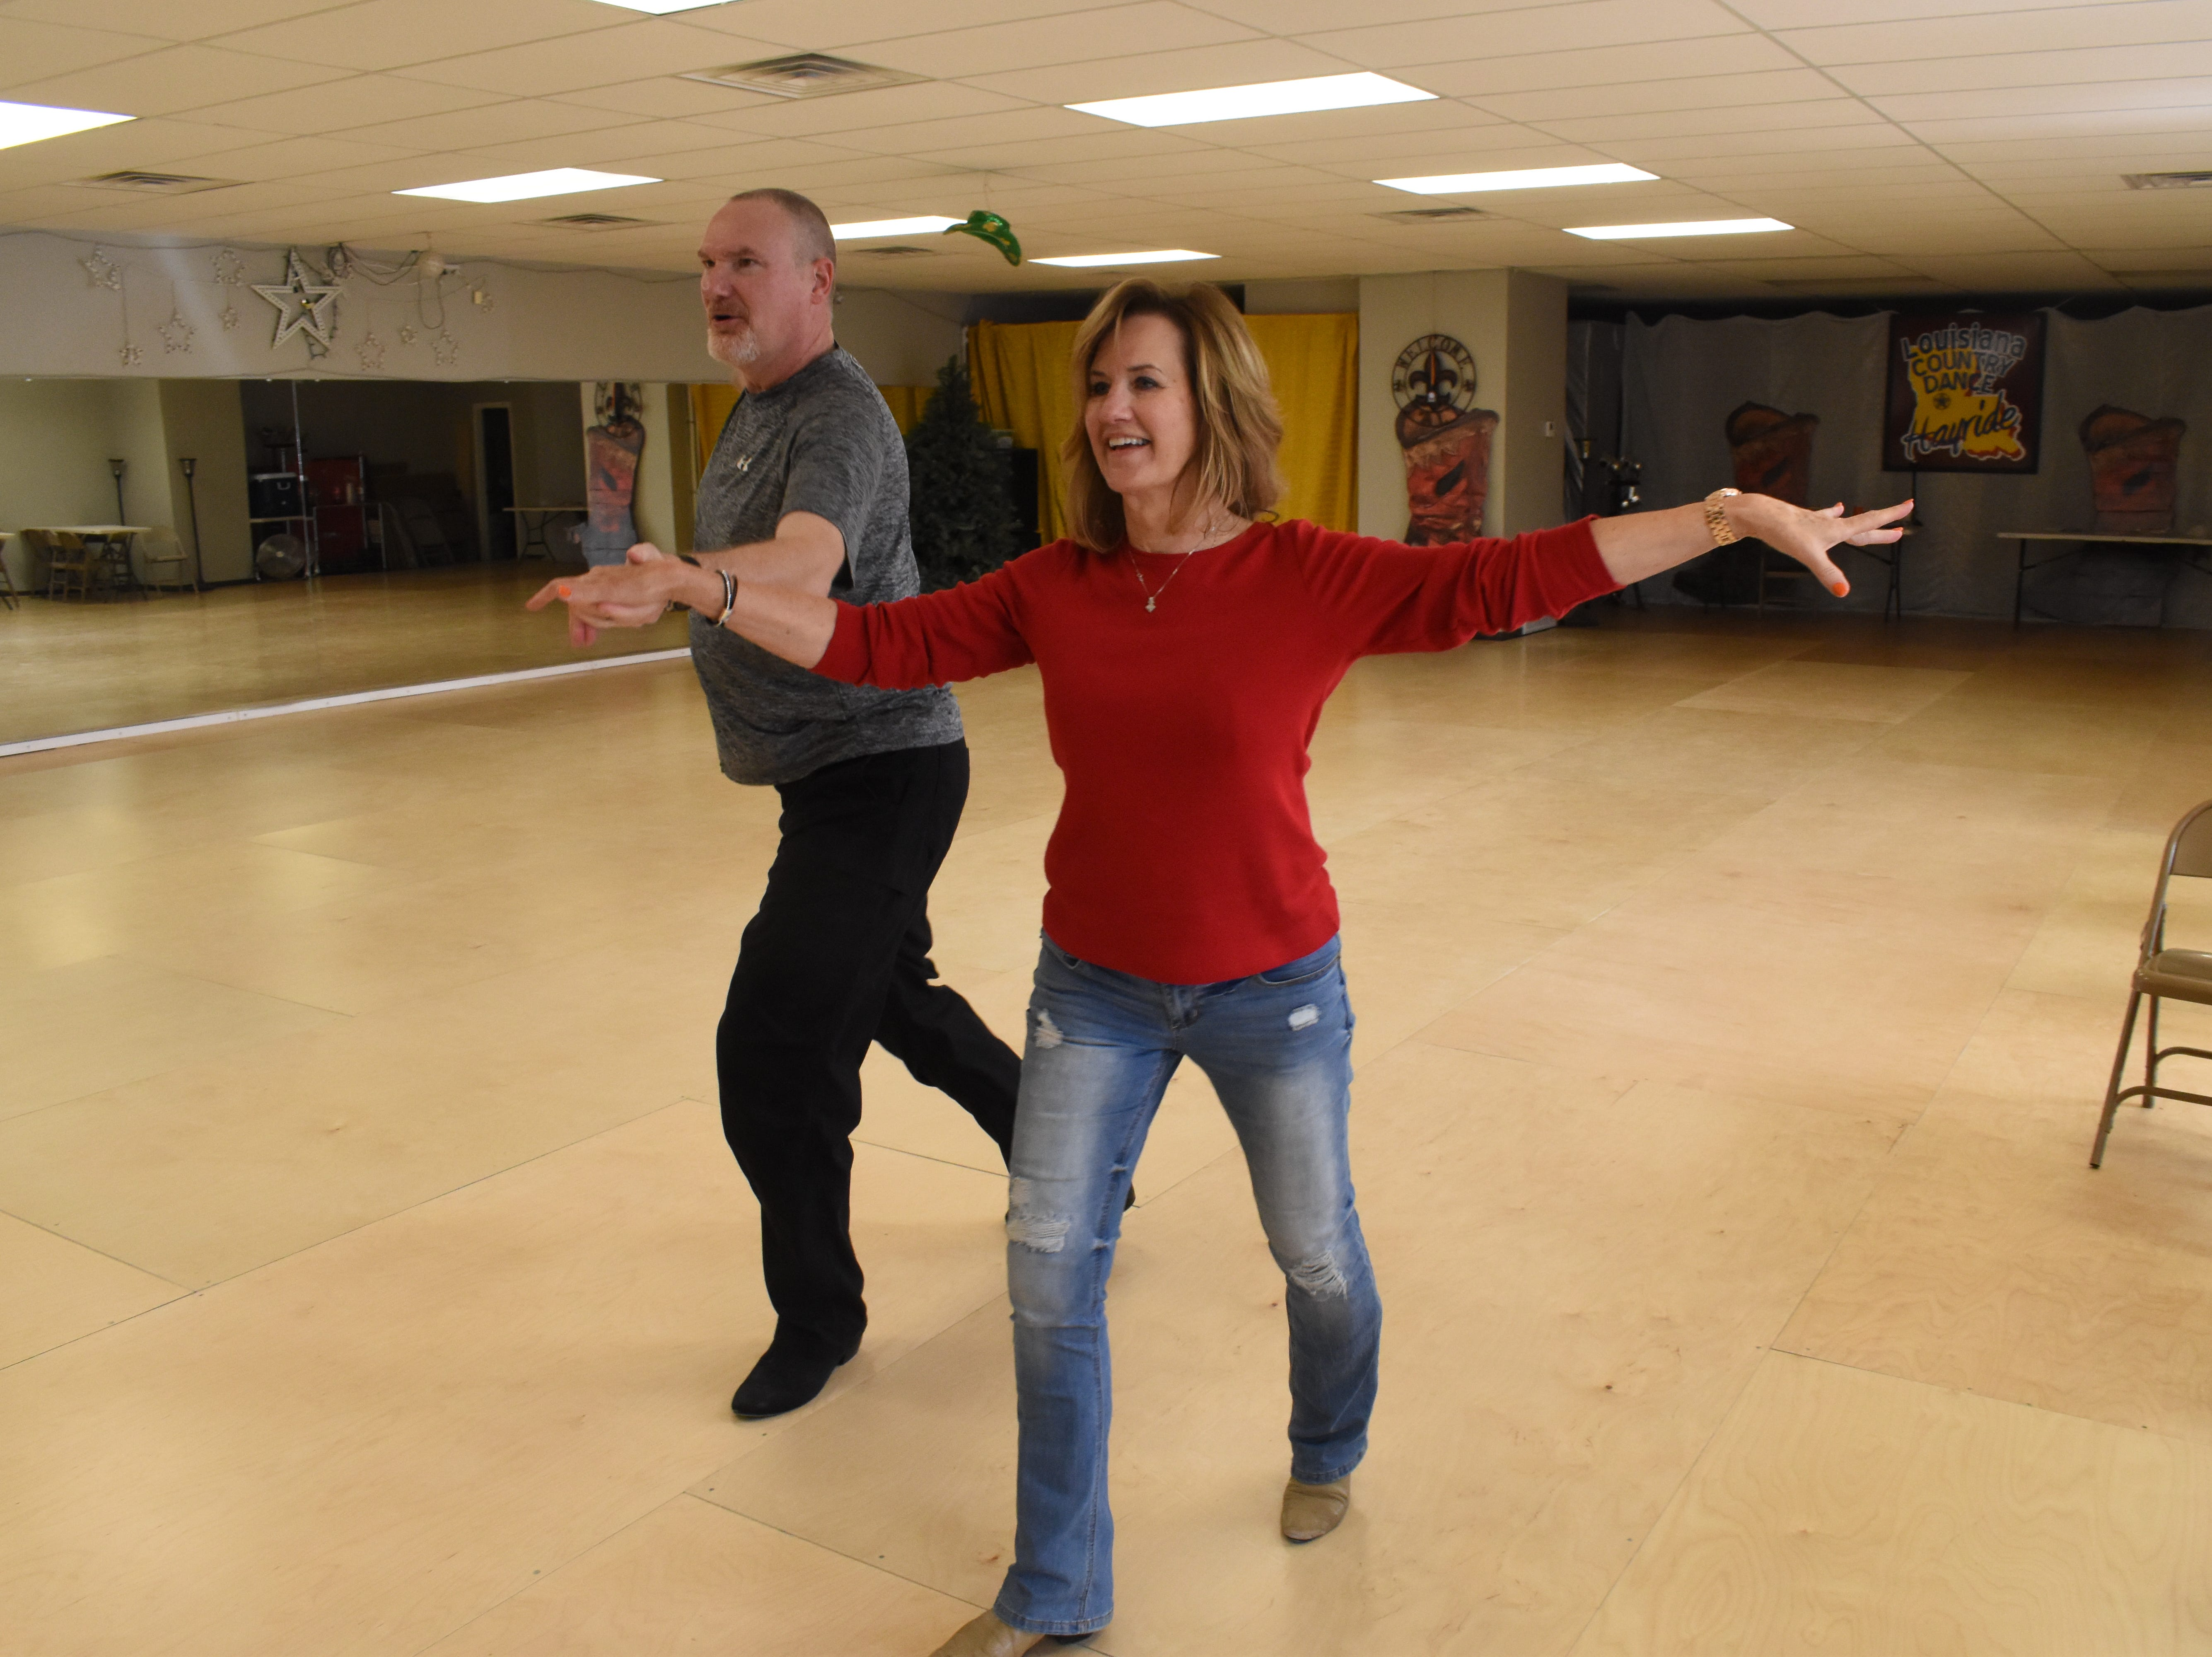 Lucky Stars Dance Studio dancers Carlyss Ducote and Bob Clanton practice a dance routine. The dancers will compete in the Louisiana Country Dance Hayride set for May 2-5 at the Best Western in Alexandria. This will be the 12th year the Louisiana Country Dance Hayride has been on the American Country Dance Association circuit. For more information about their events, visit www.lacountrydancehayride.com or the Louisiana Country Dance Hayride Facebook page.